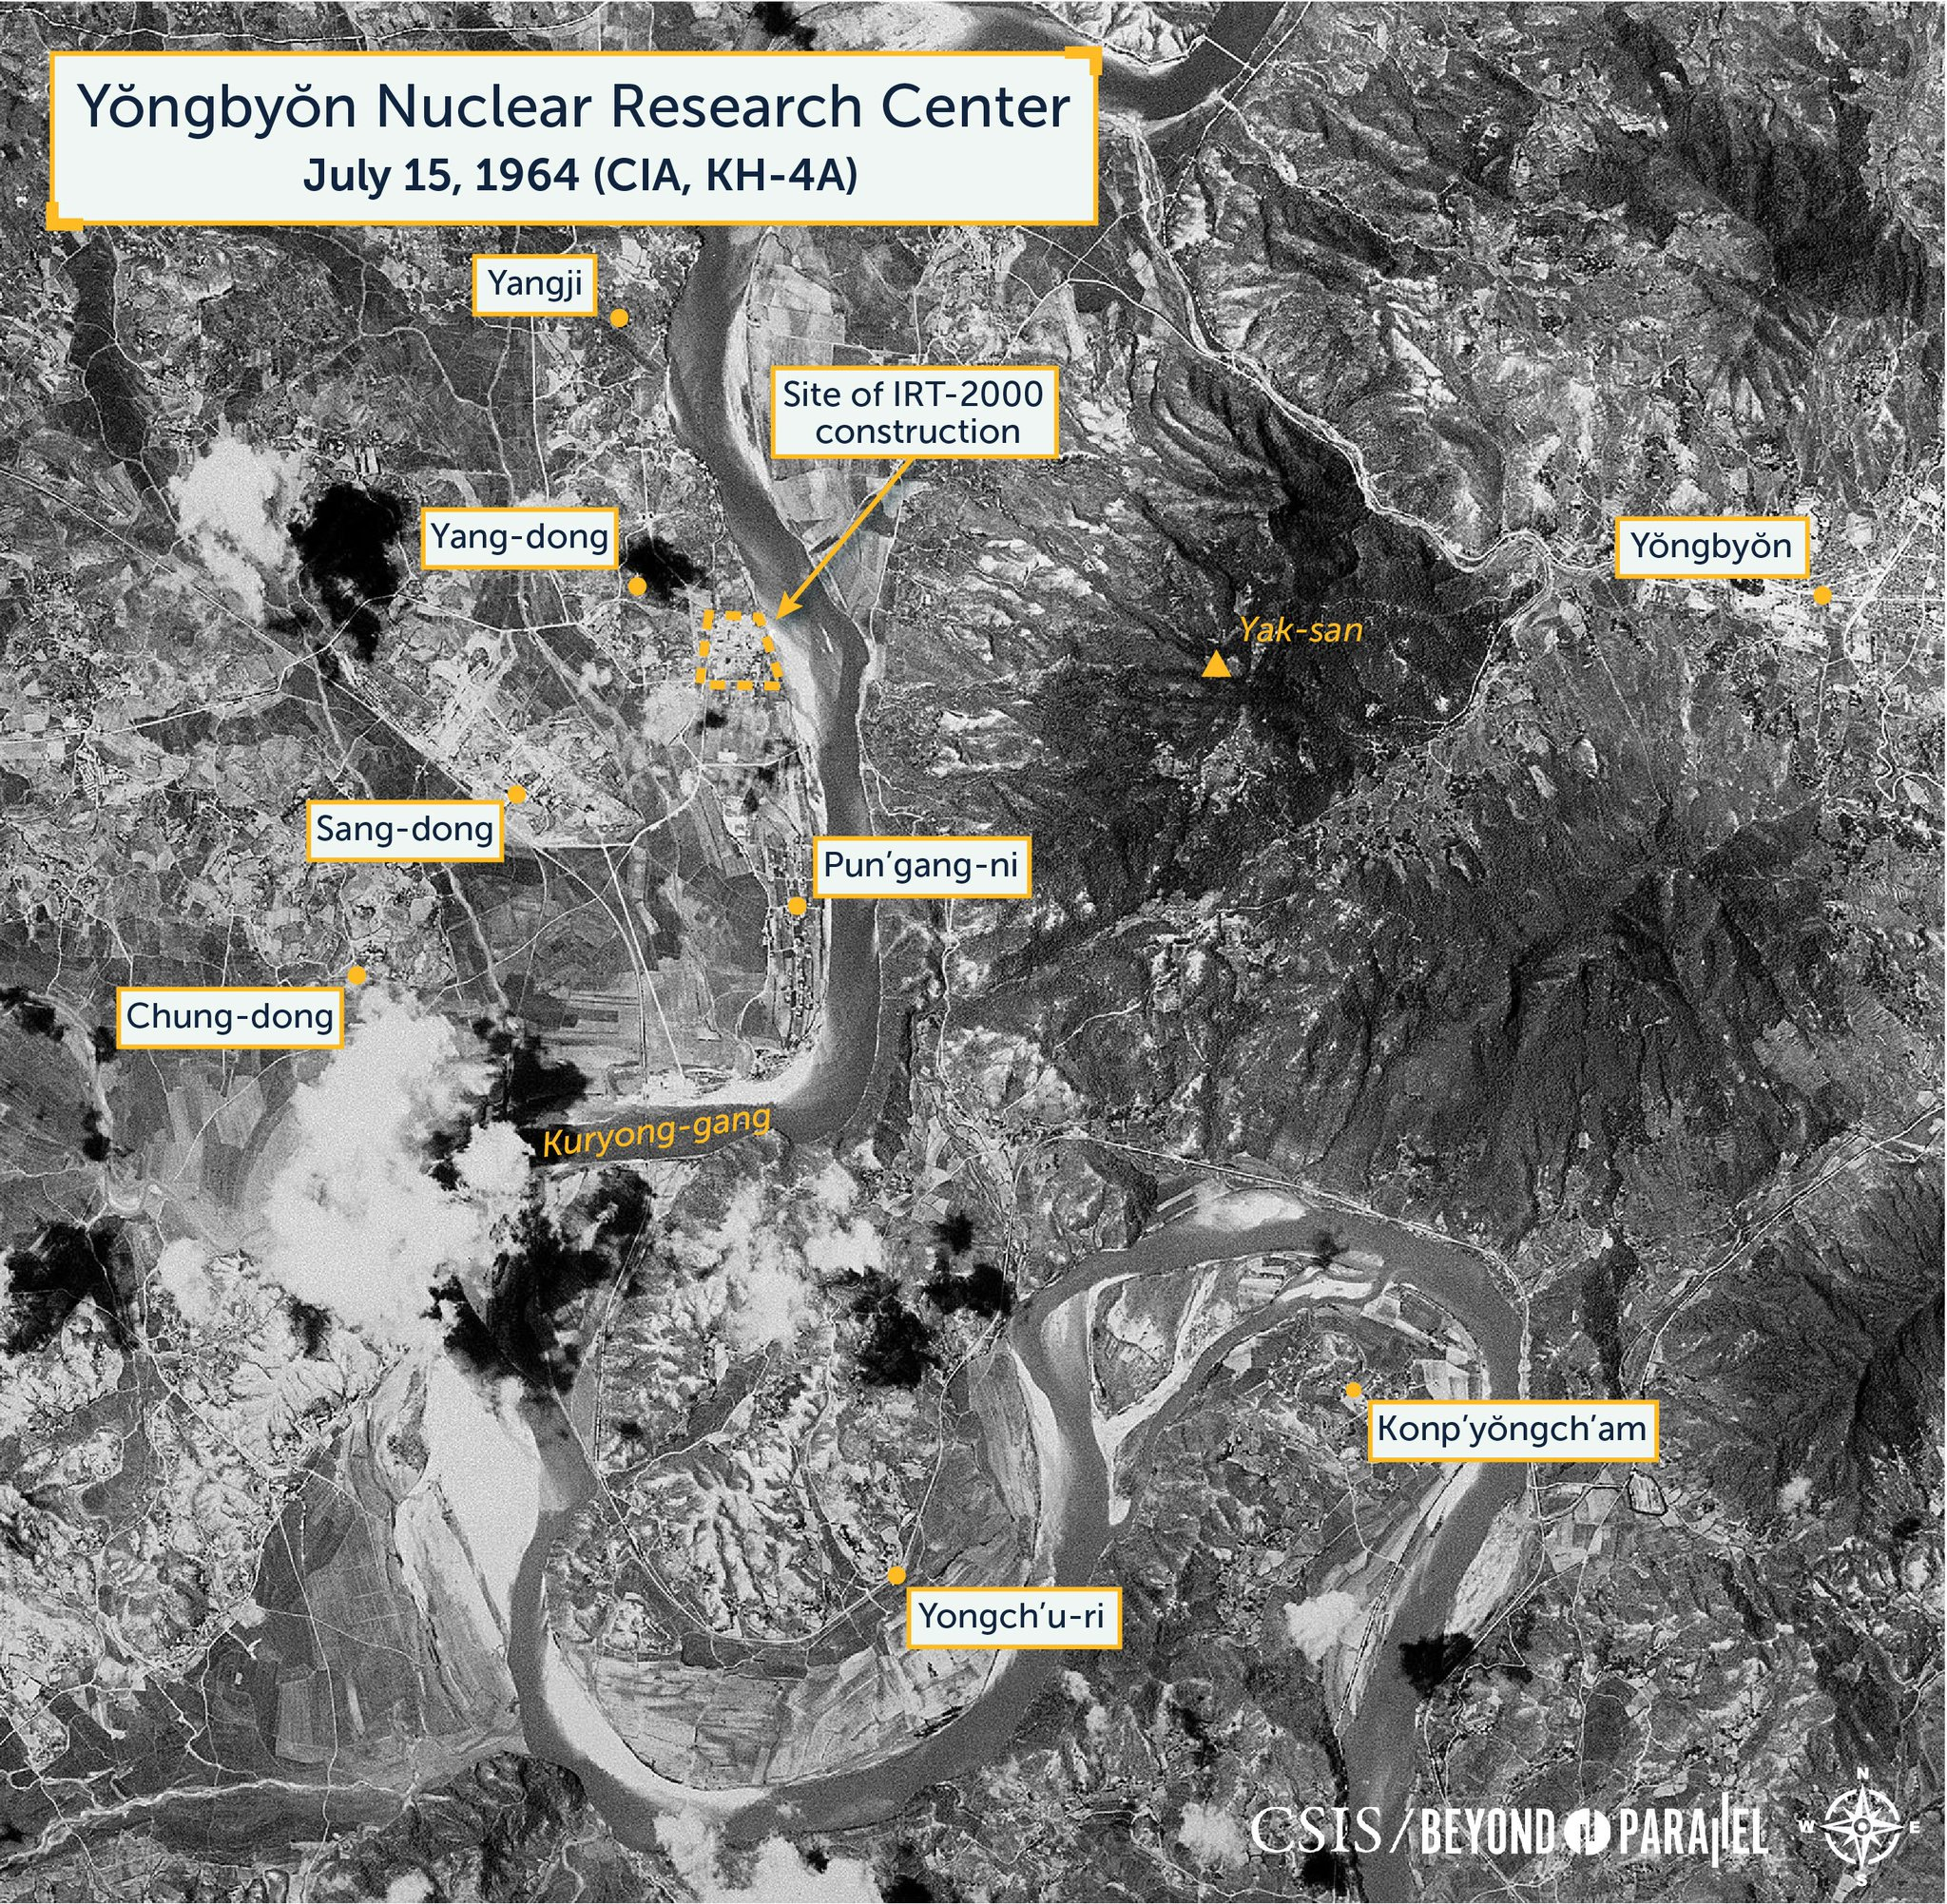 A year to year analysis of North Korea's first nuclear research reactor: https://t.co/GKRKdZPEUa https://t.co/9L0dLU5uD7